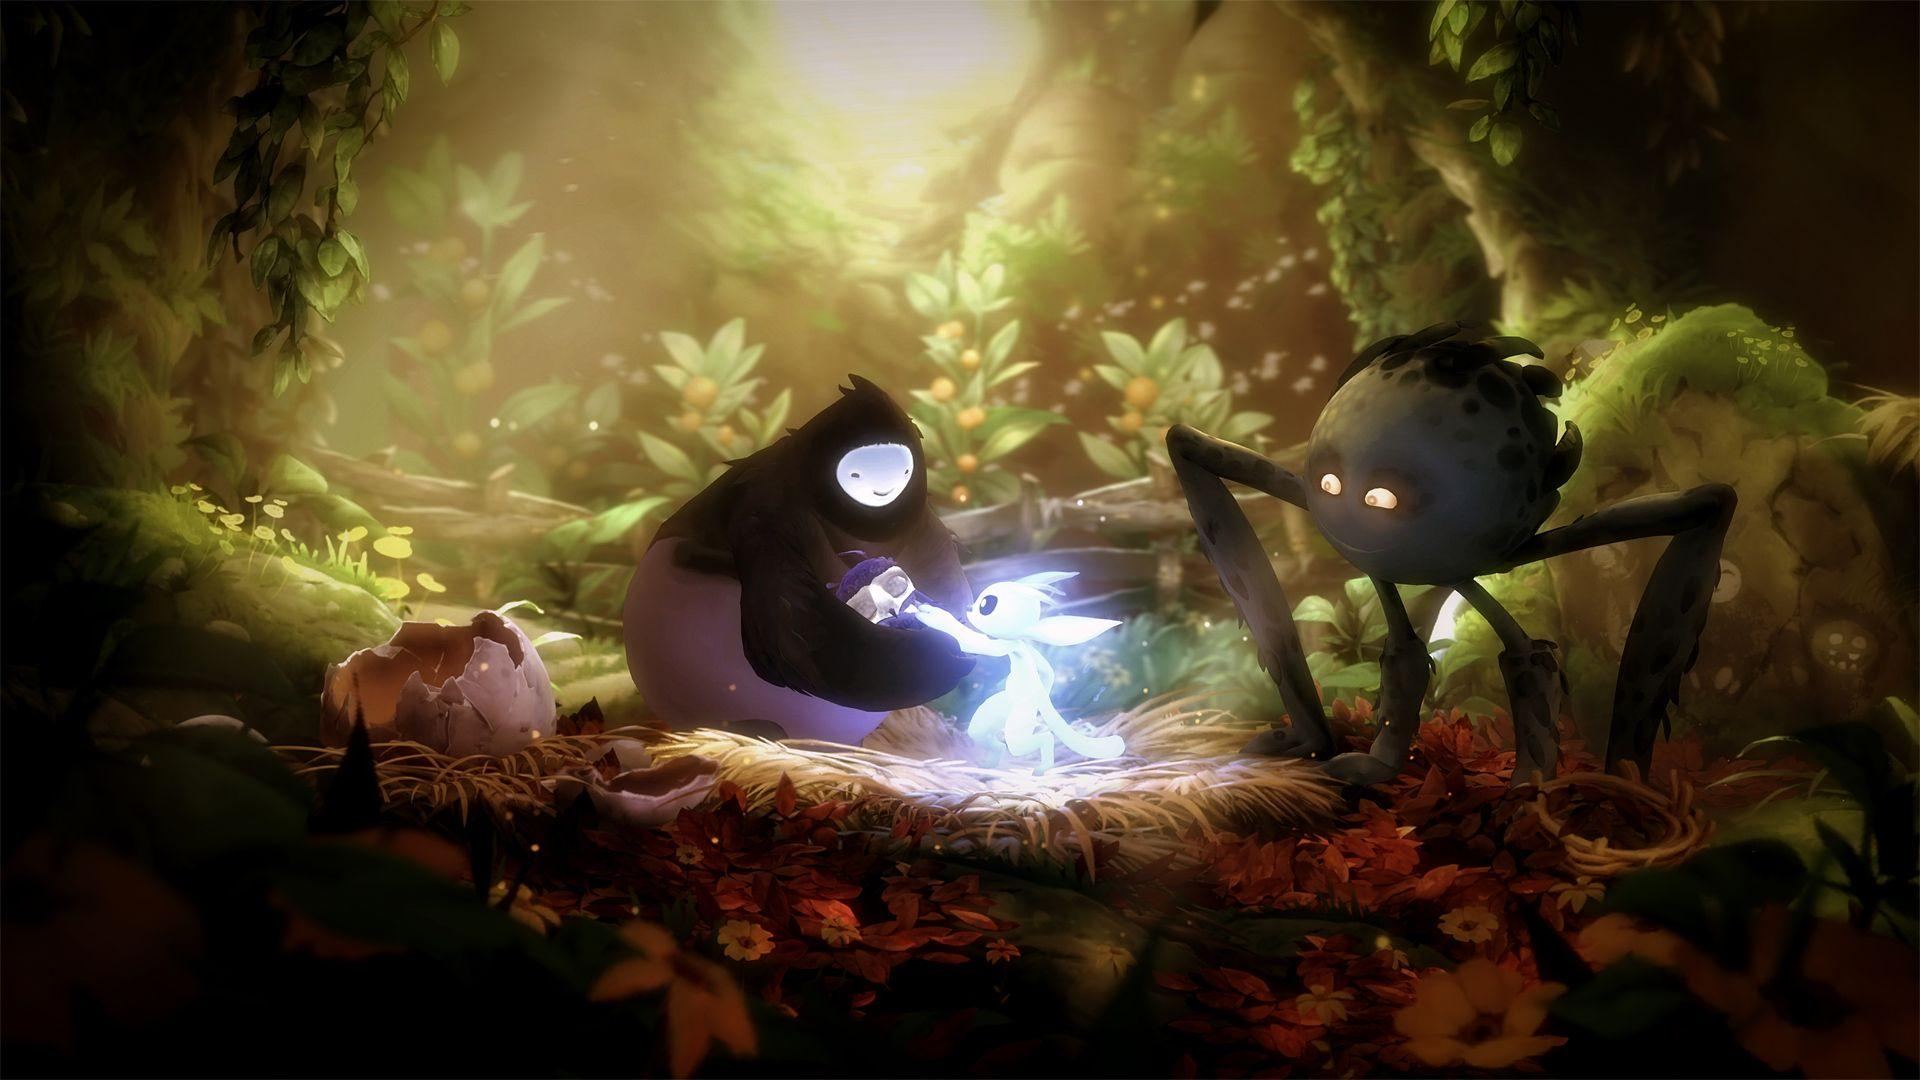 Ori's memories. Wallpapers from Ori and the Will of the Wisps